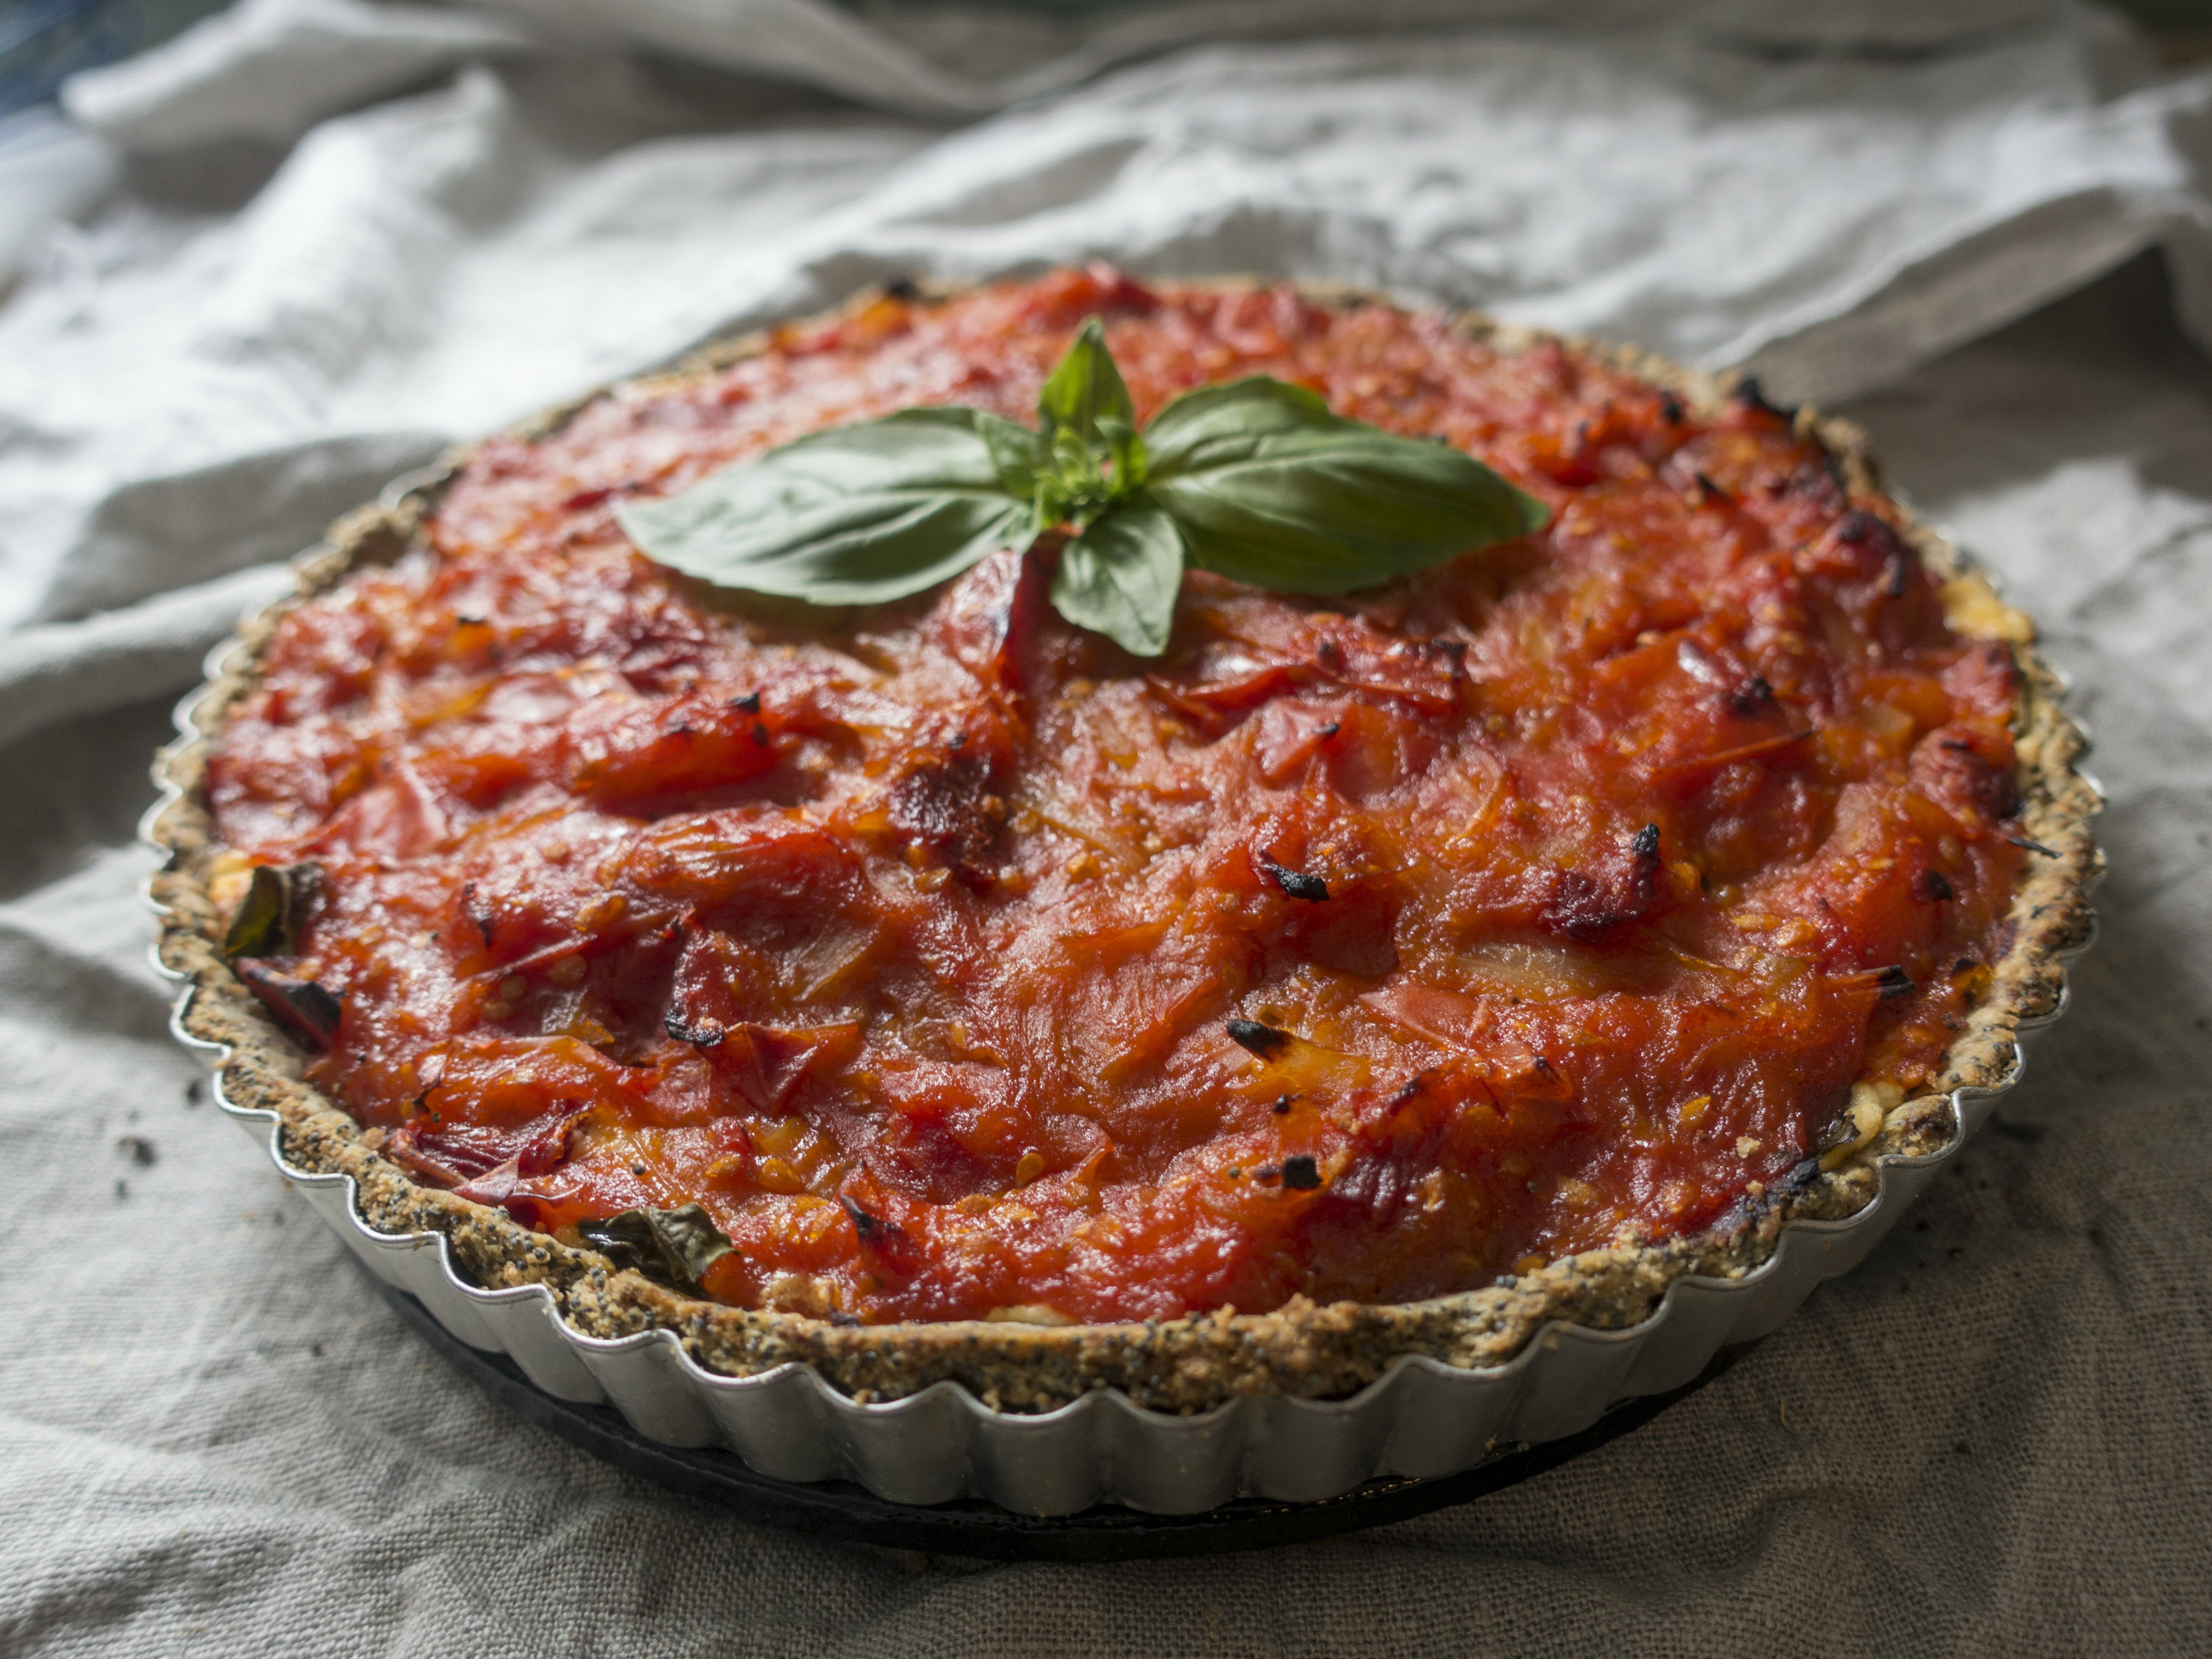 A tart with tomato sauce and basil on top